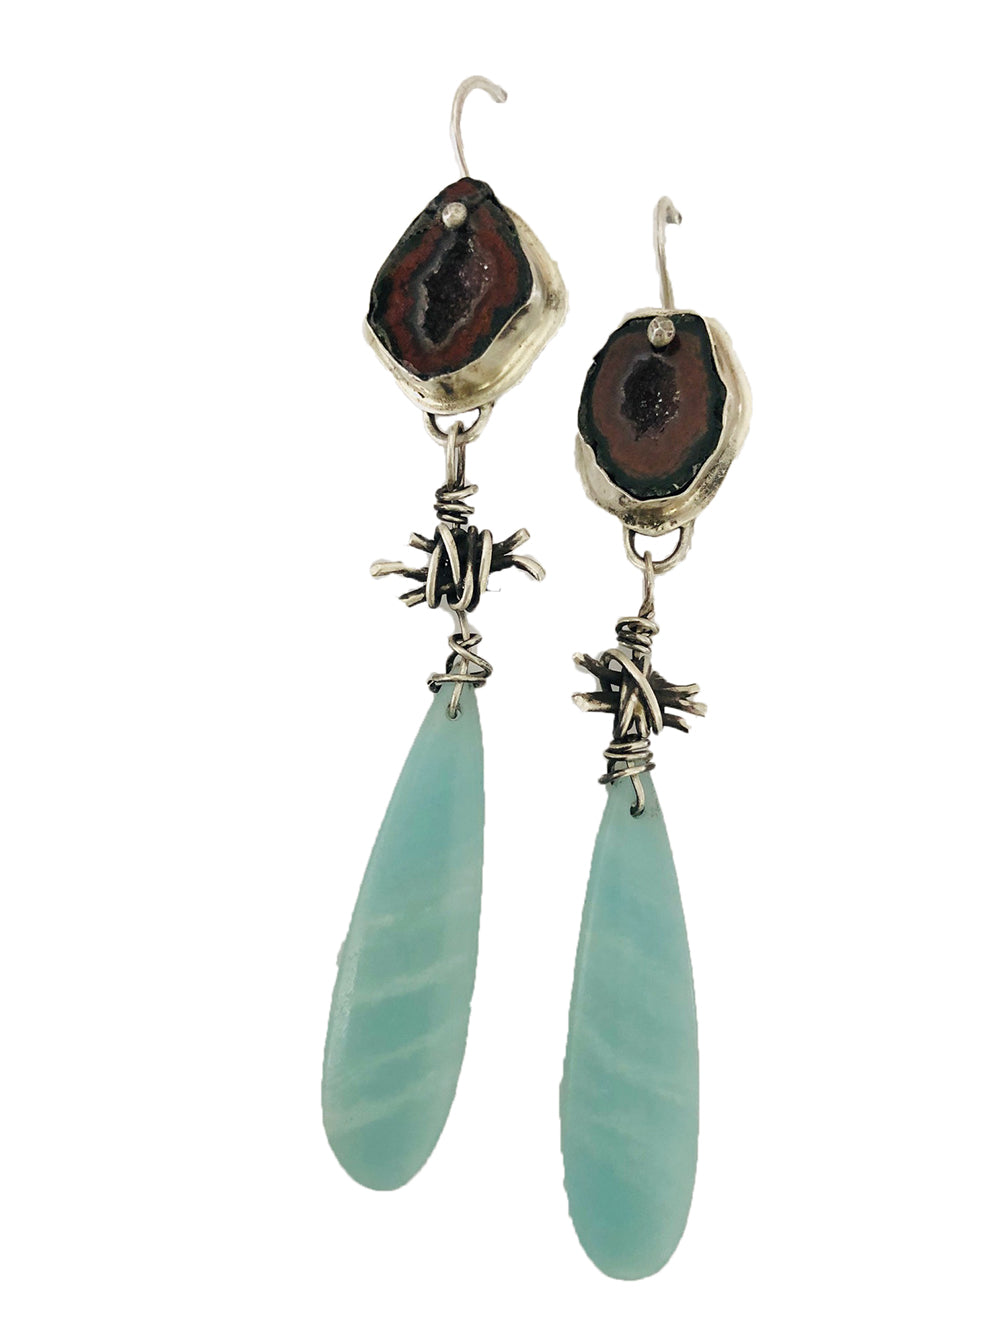 Agate & Larimer Earrings